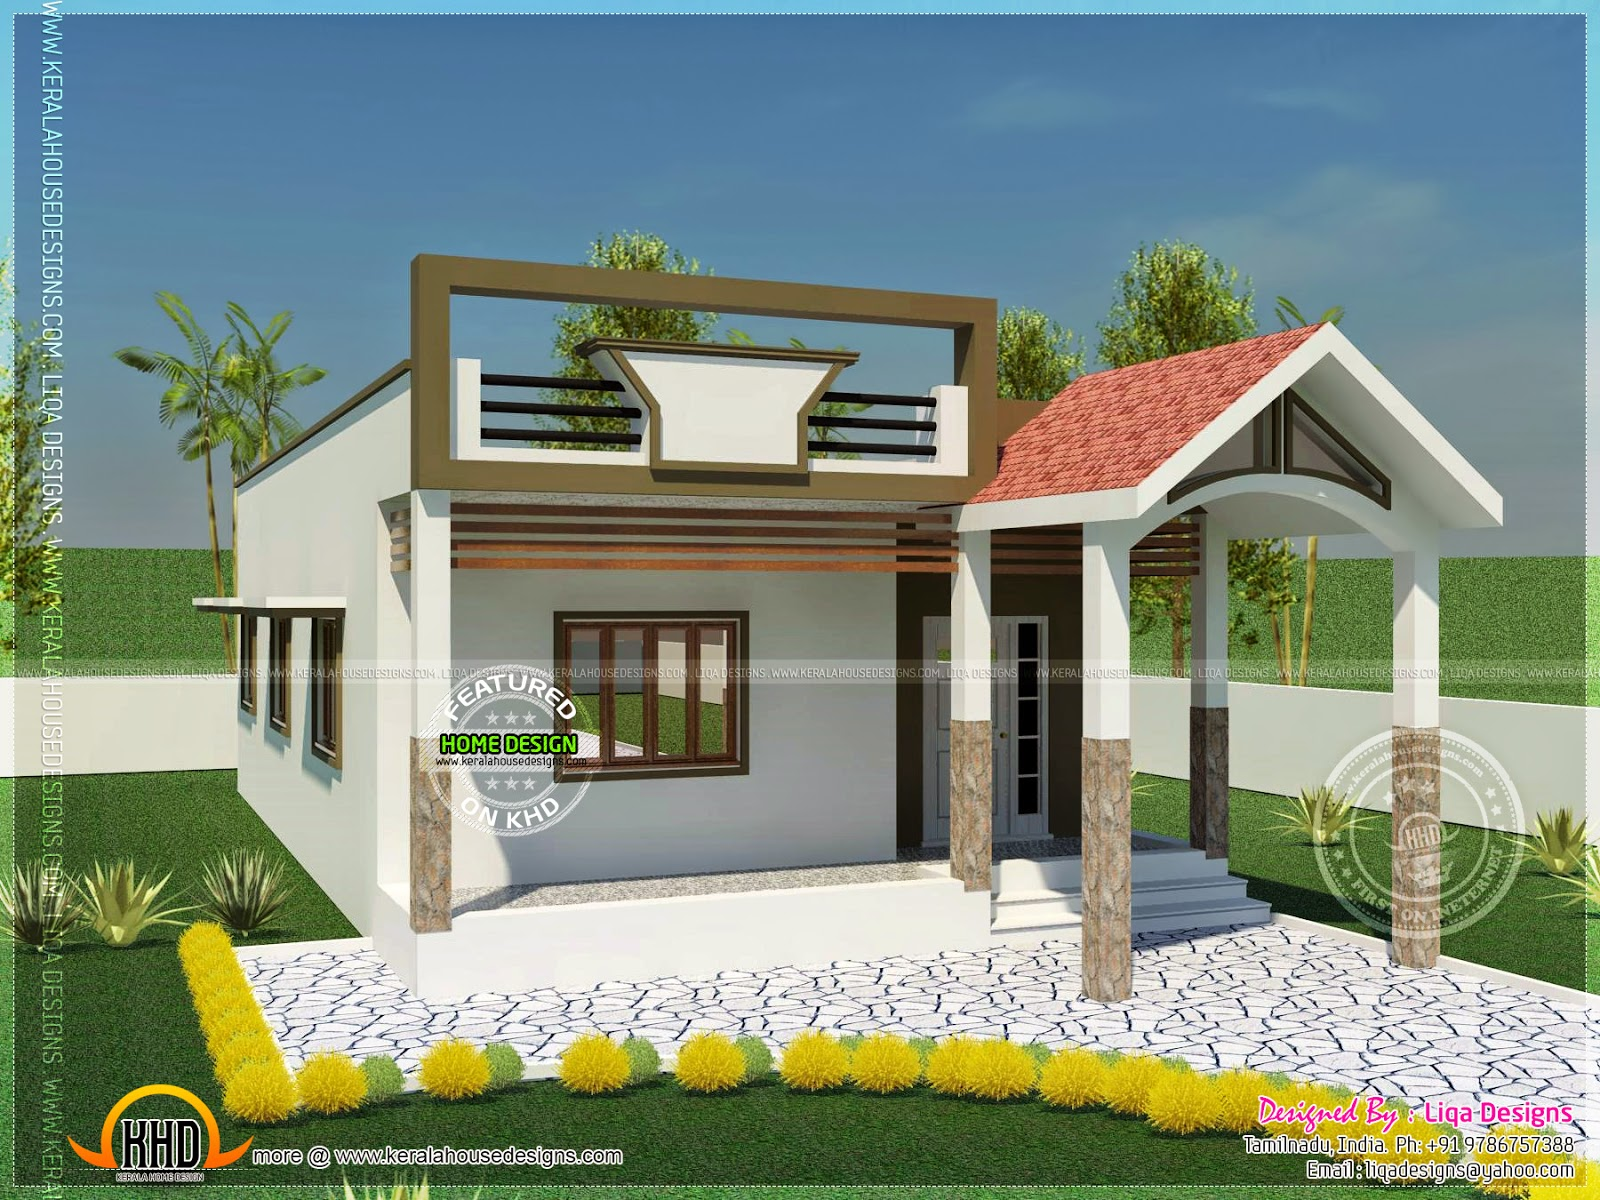 740 square feet single storied house kerala home design for Variety home designs